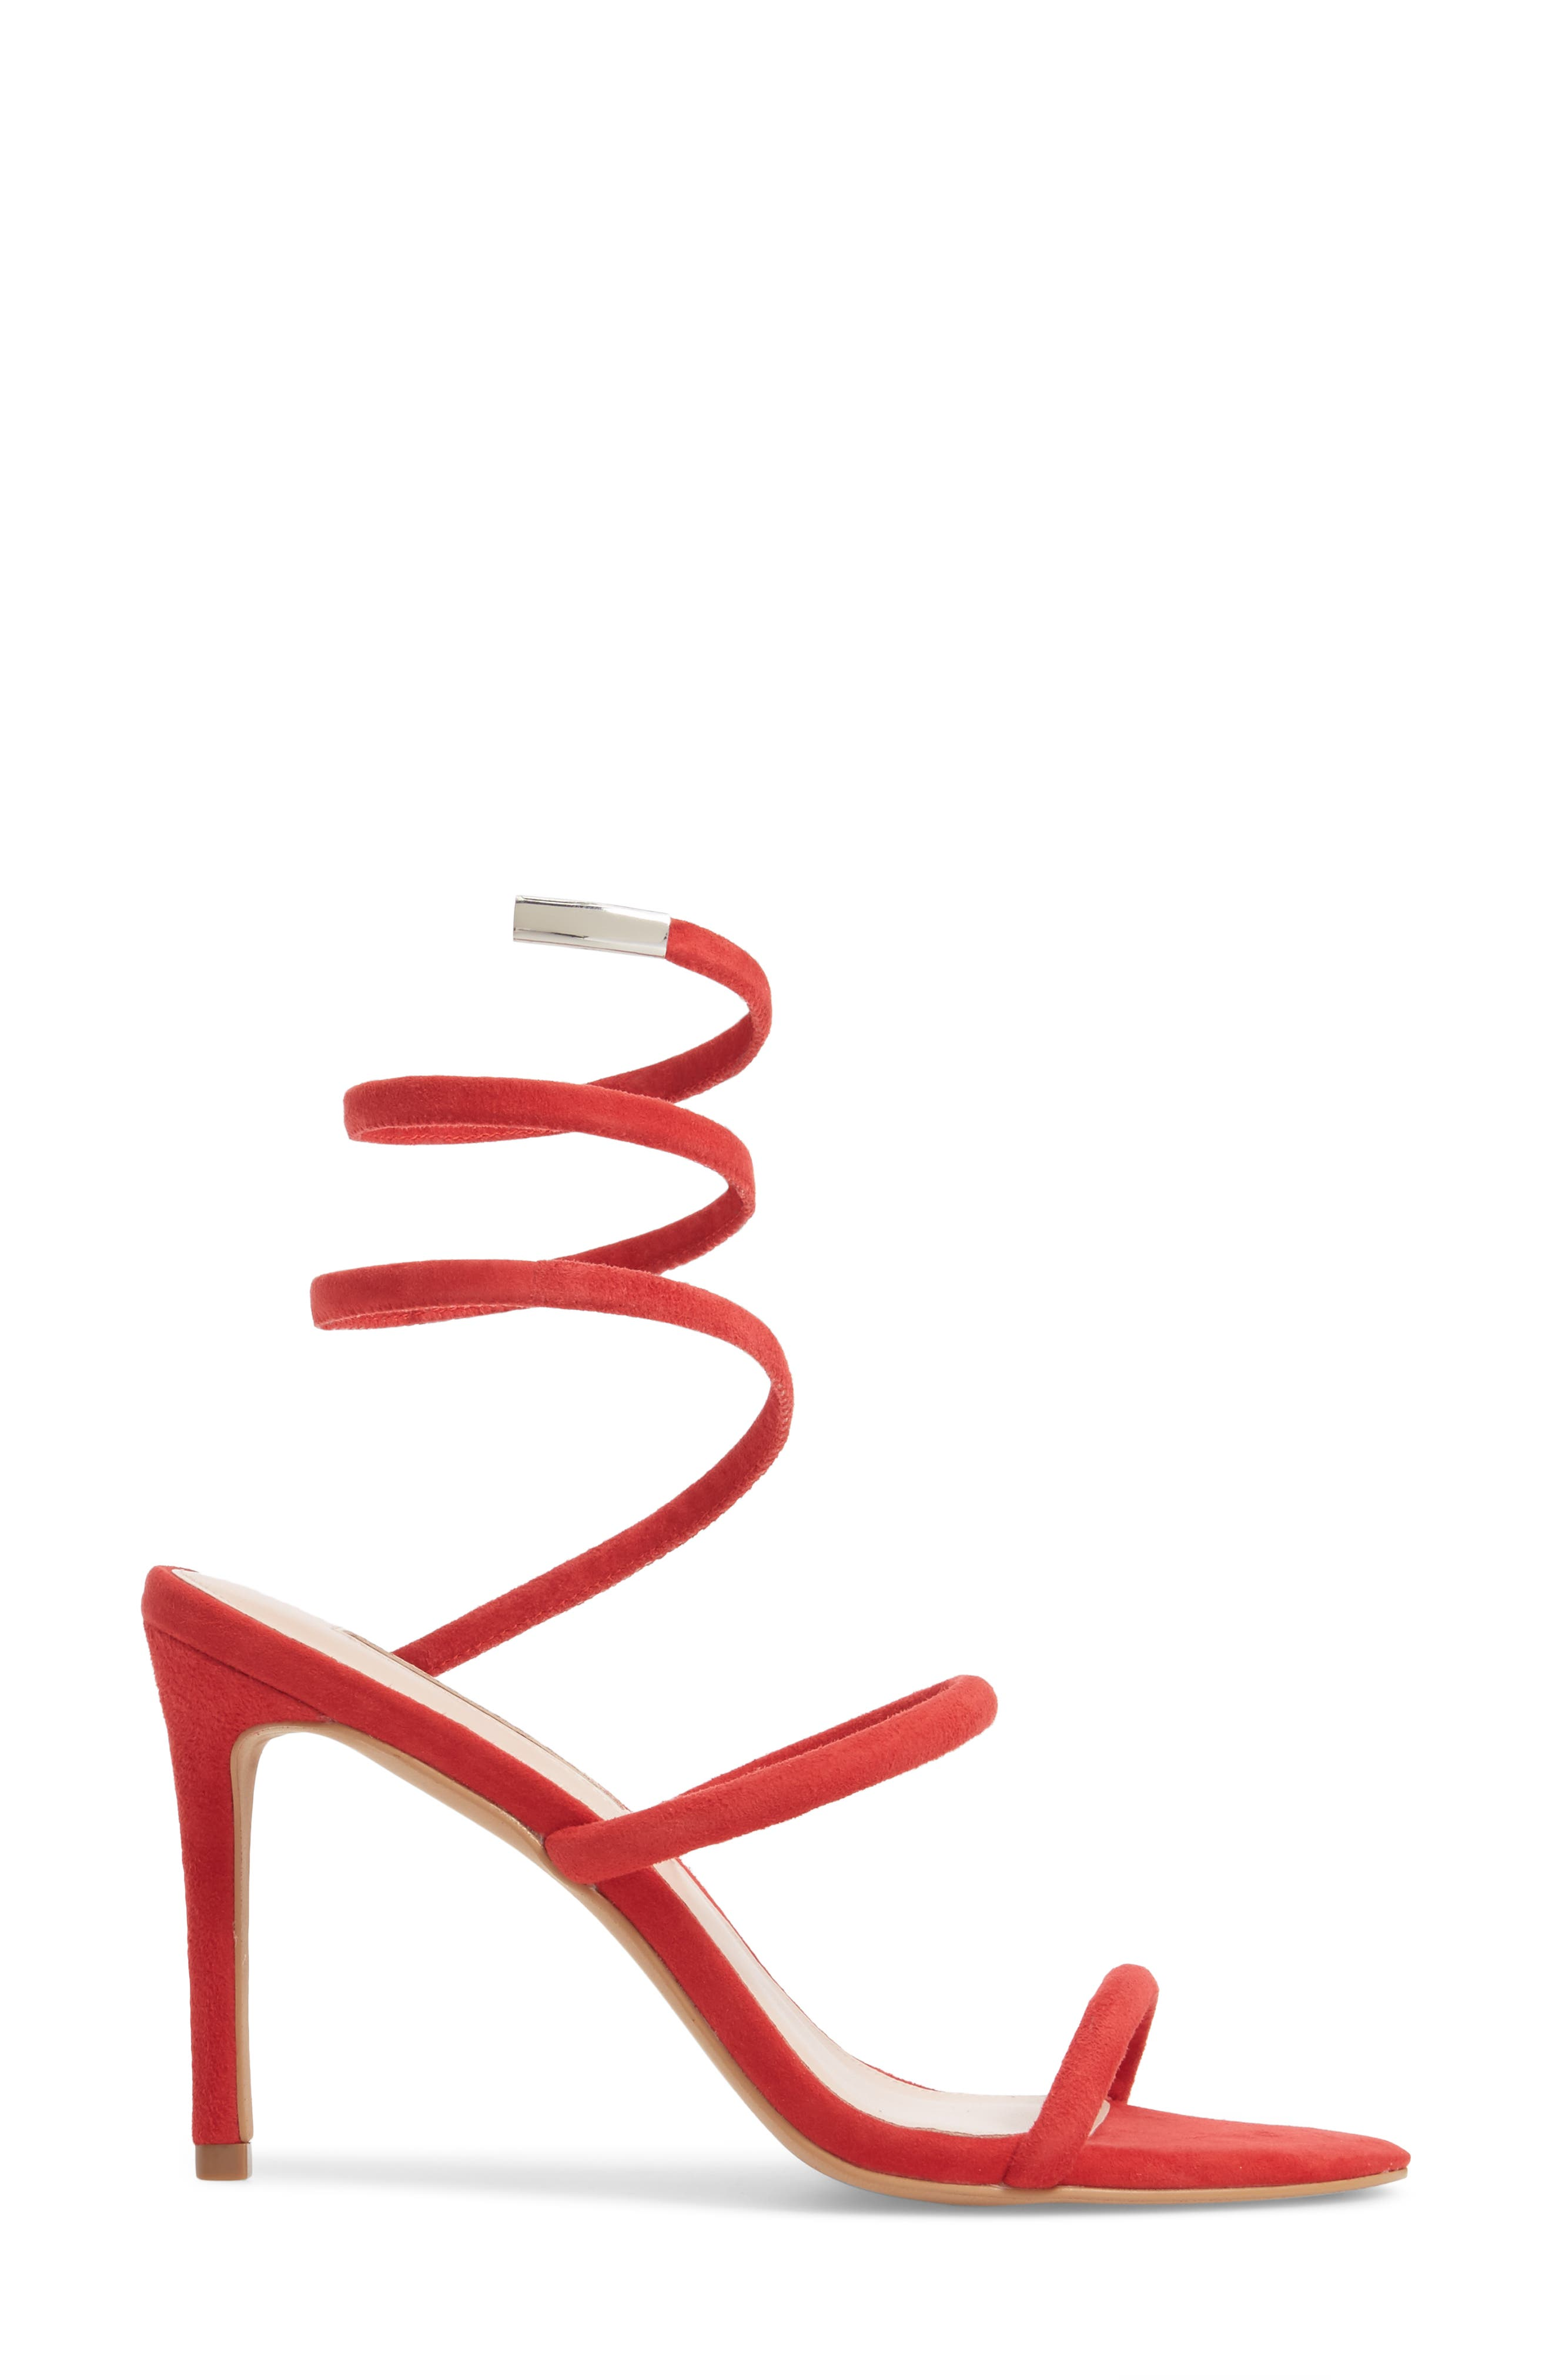 Joia Ankle Wrap Sandal,                             Alternate thumbnail 3, color,                             Rouge Suede